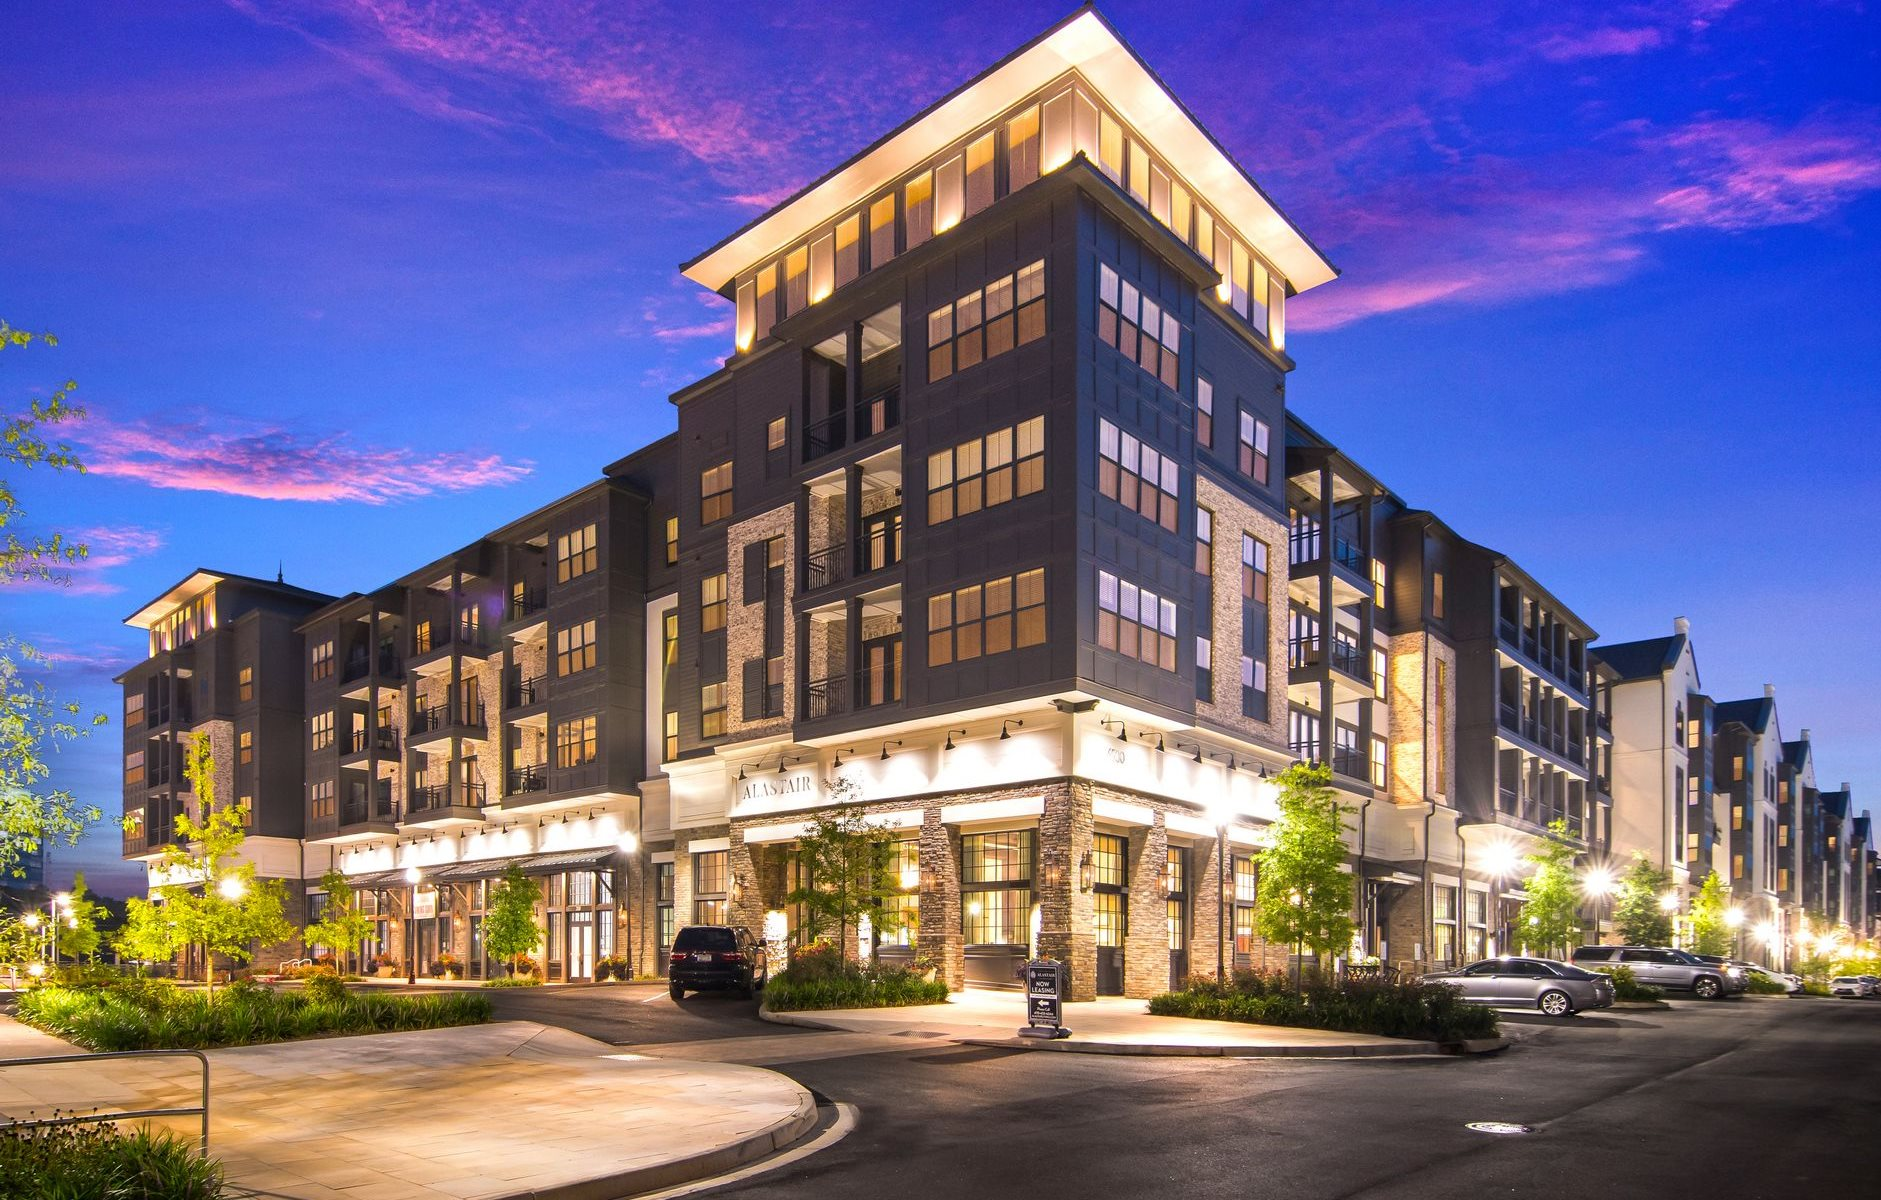 Leasing Office Exterior at Night at The Alastair at Aria Village Apartment Homes in Sandy Springs, Georgia, GA